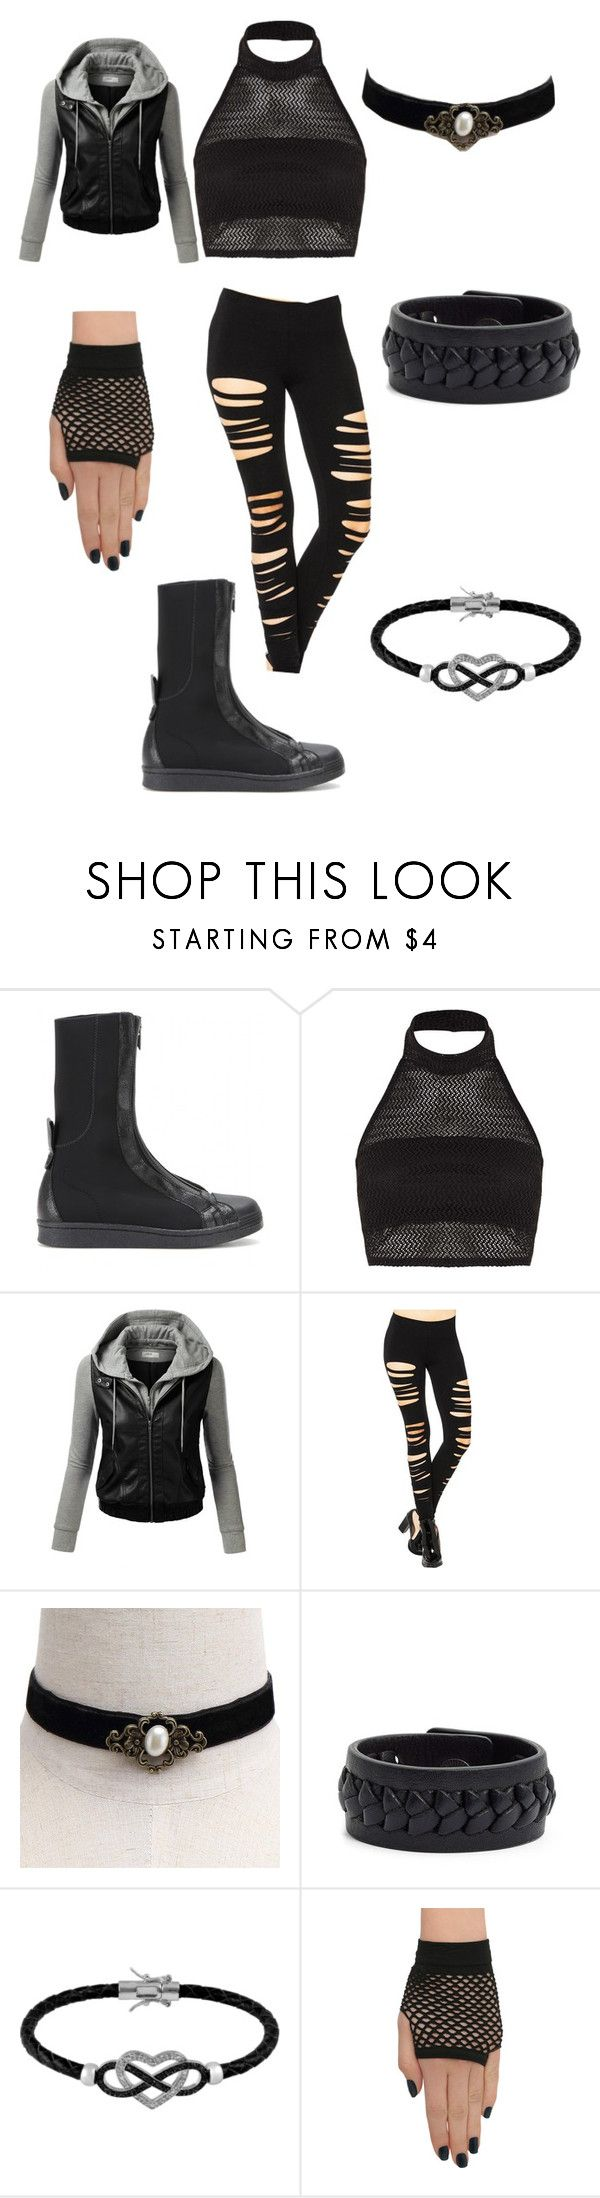 """""""Naruto OC, Ninja outfit (Hōseki)"""" by creativekeys ❤ liked on Polyvore featuring Y-3, Boohoo, J.TOMSON, Frye, Jewel Exclusive and Hot Topic"""